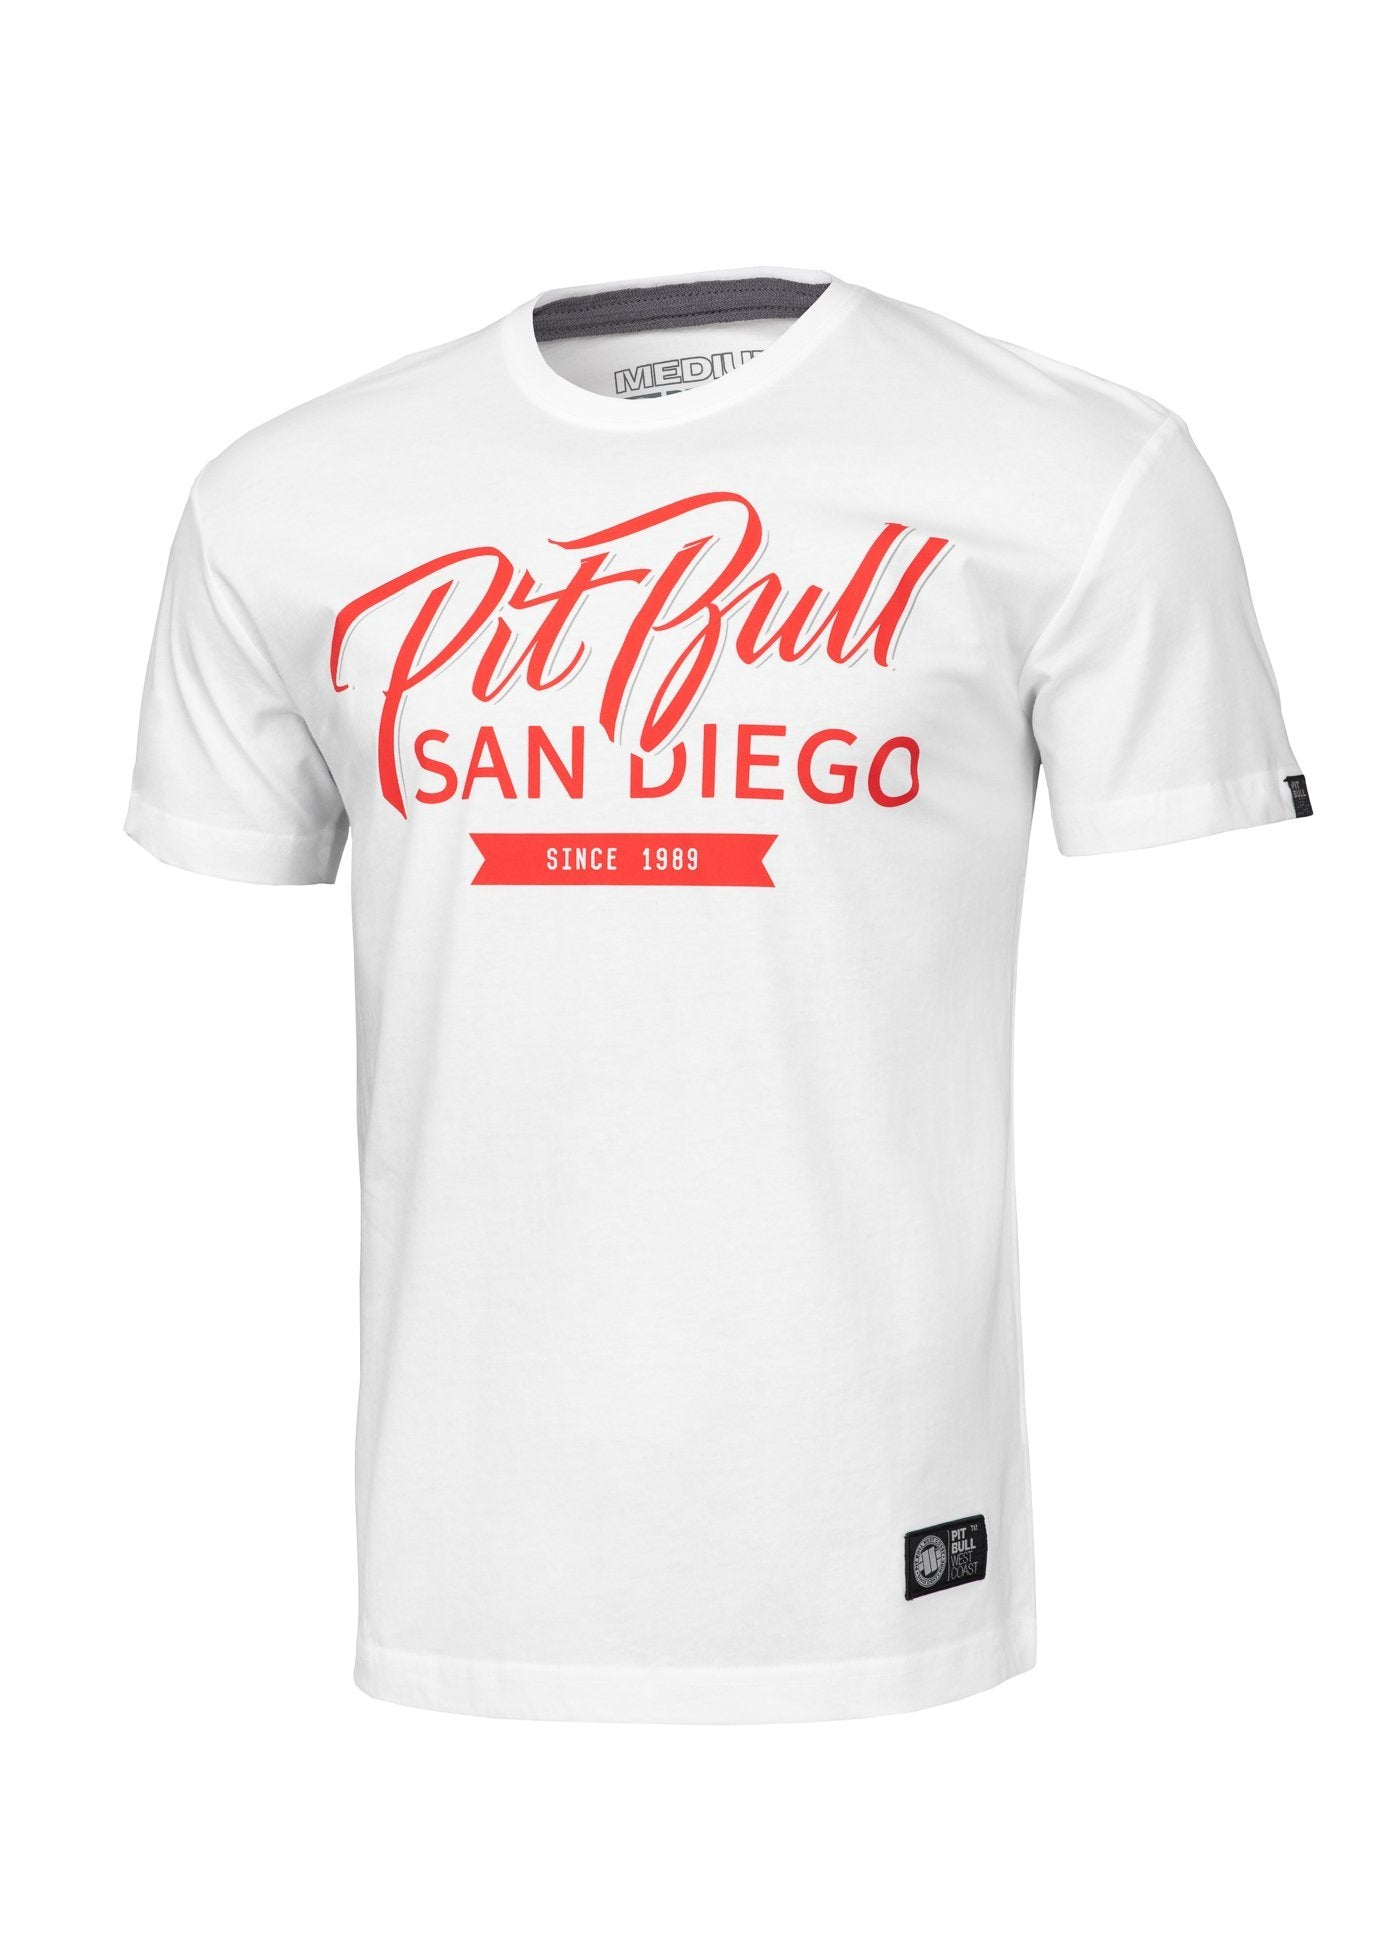 T-shirt EL JEFE White - Pitbull West Coast U.S.A.